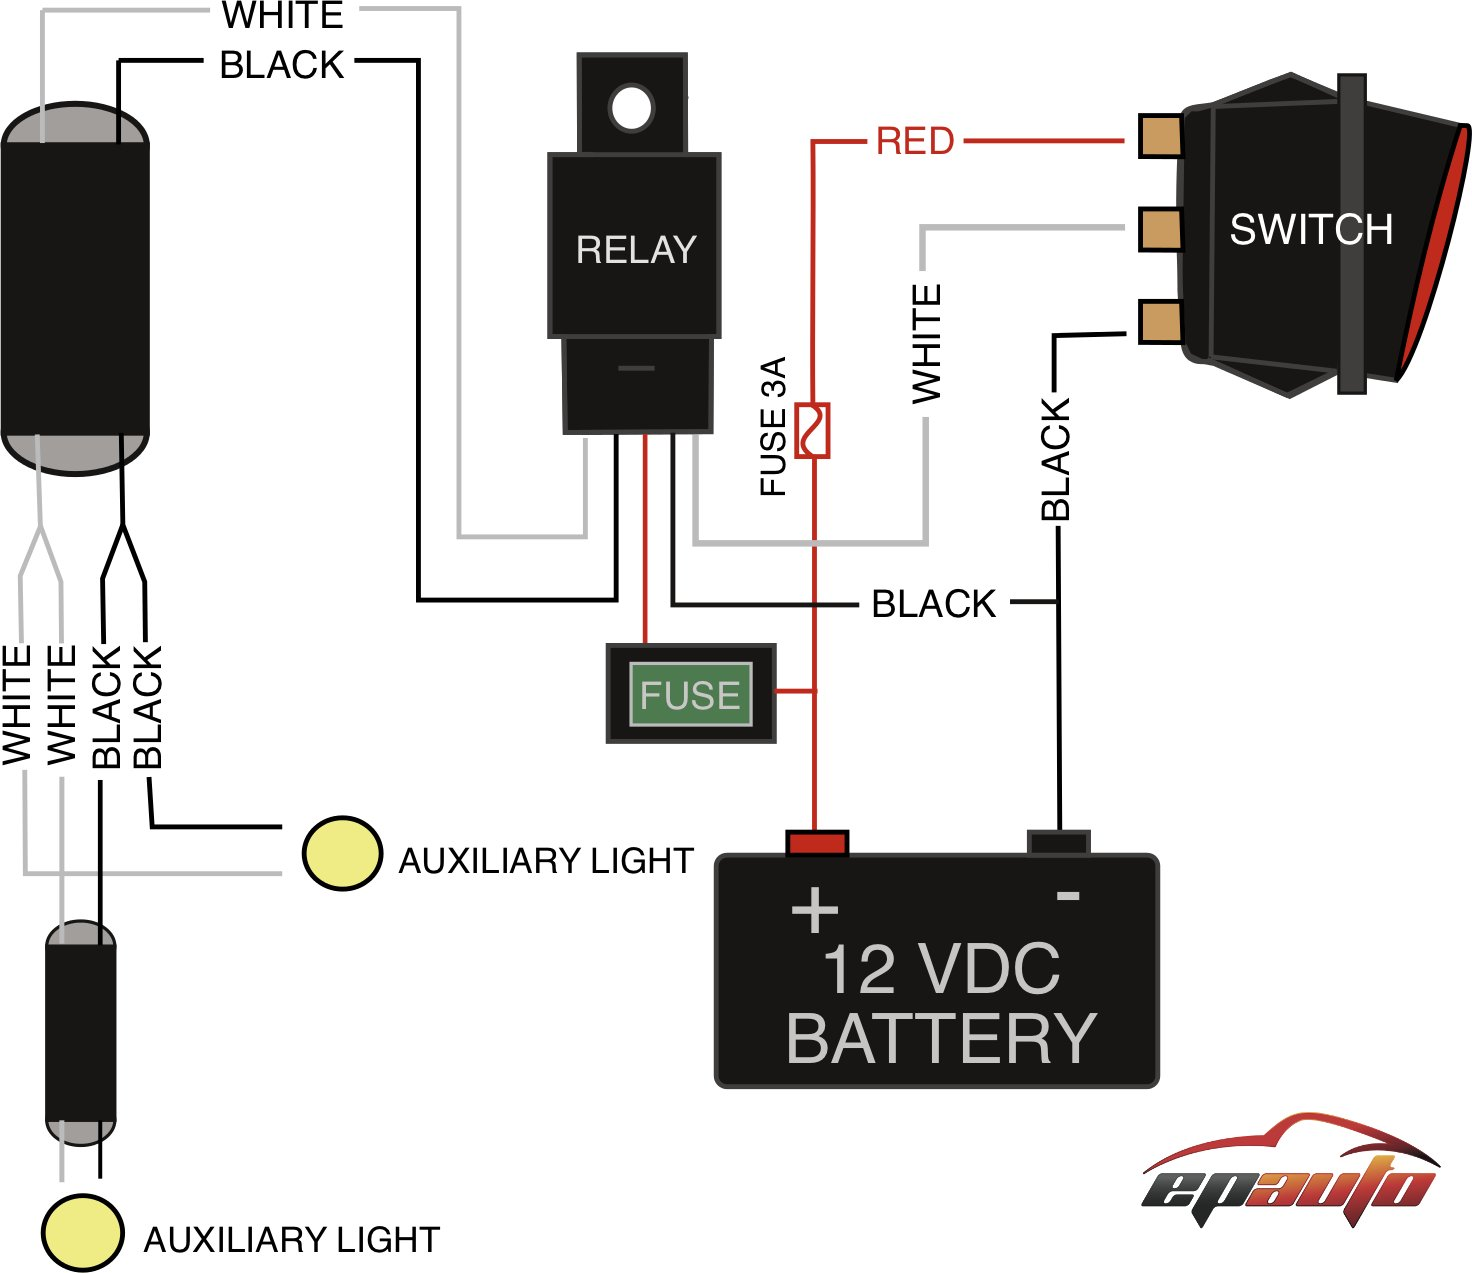 Epauto Led Light Bar Wiring Harness Kit 12v 40a Relay Schematic Shows Typical Diagram 1999 Reference Fuse On Off Switch Automotive